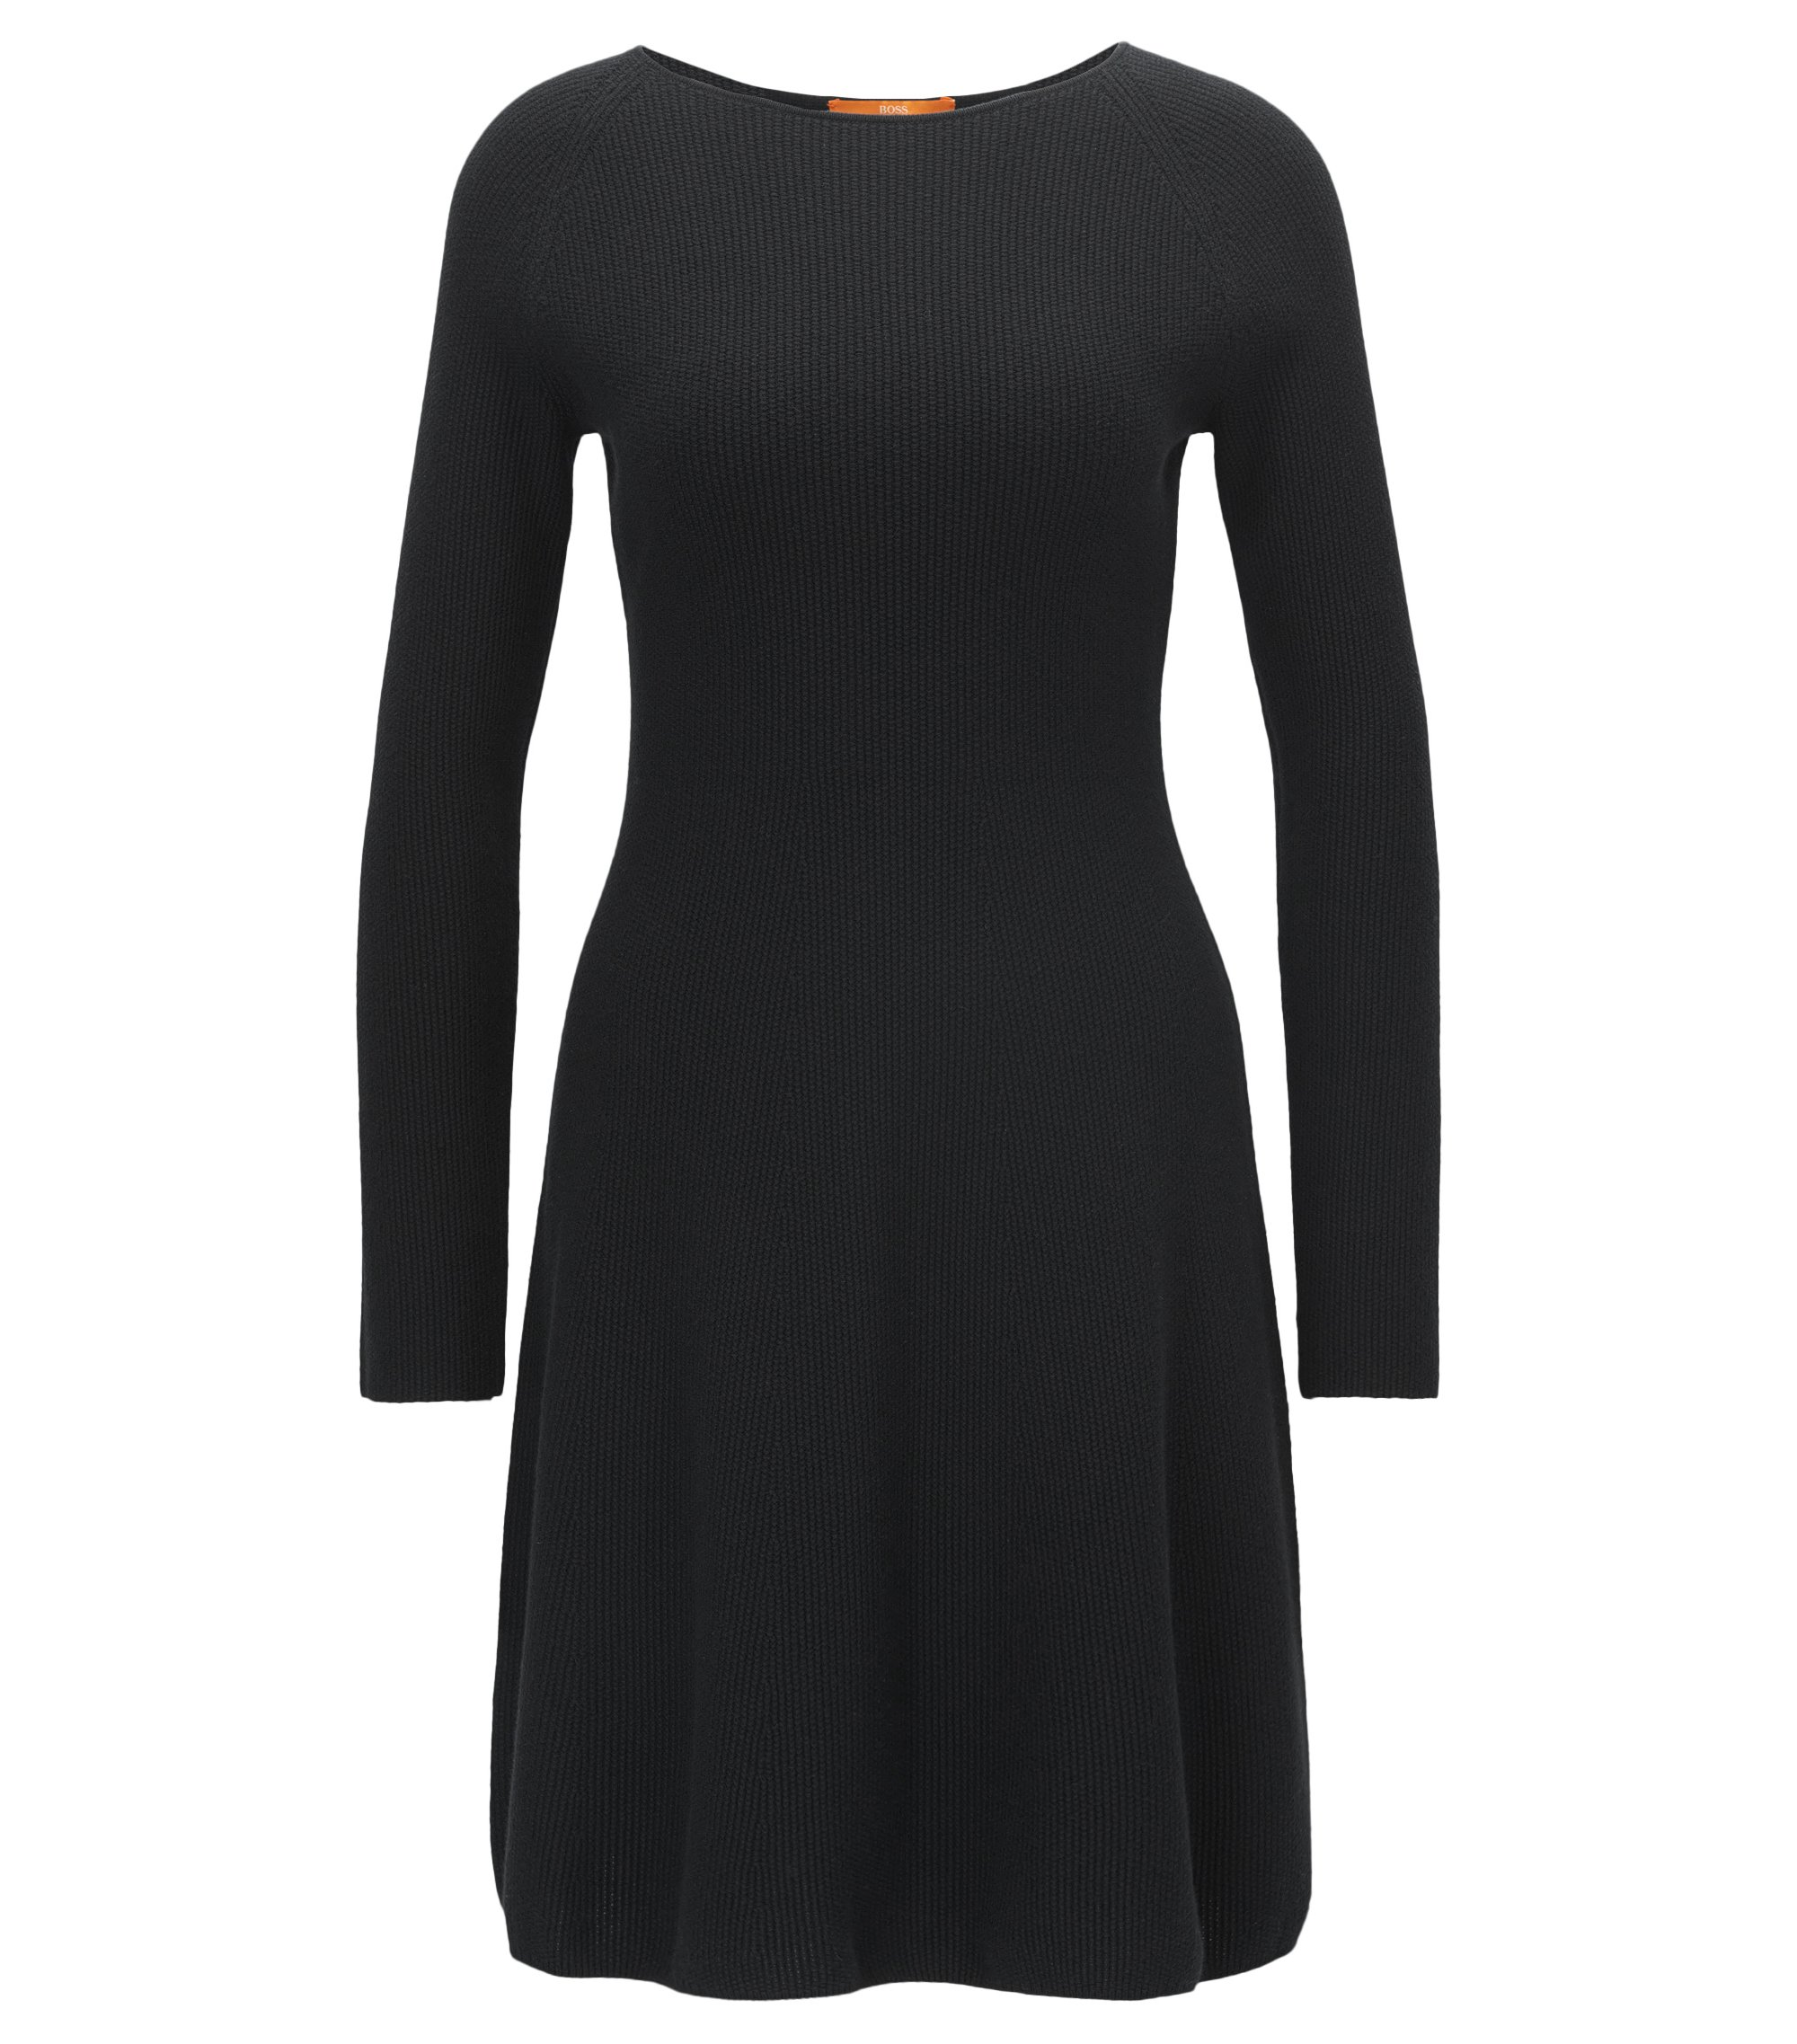 Long-sleeved dress in a knitted cotton blend, Black